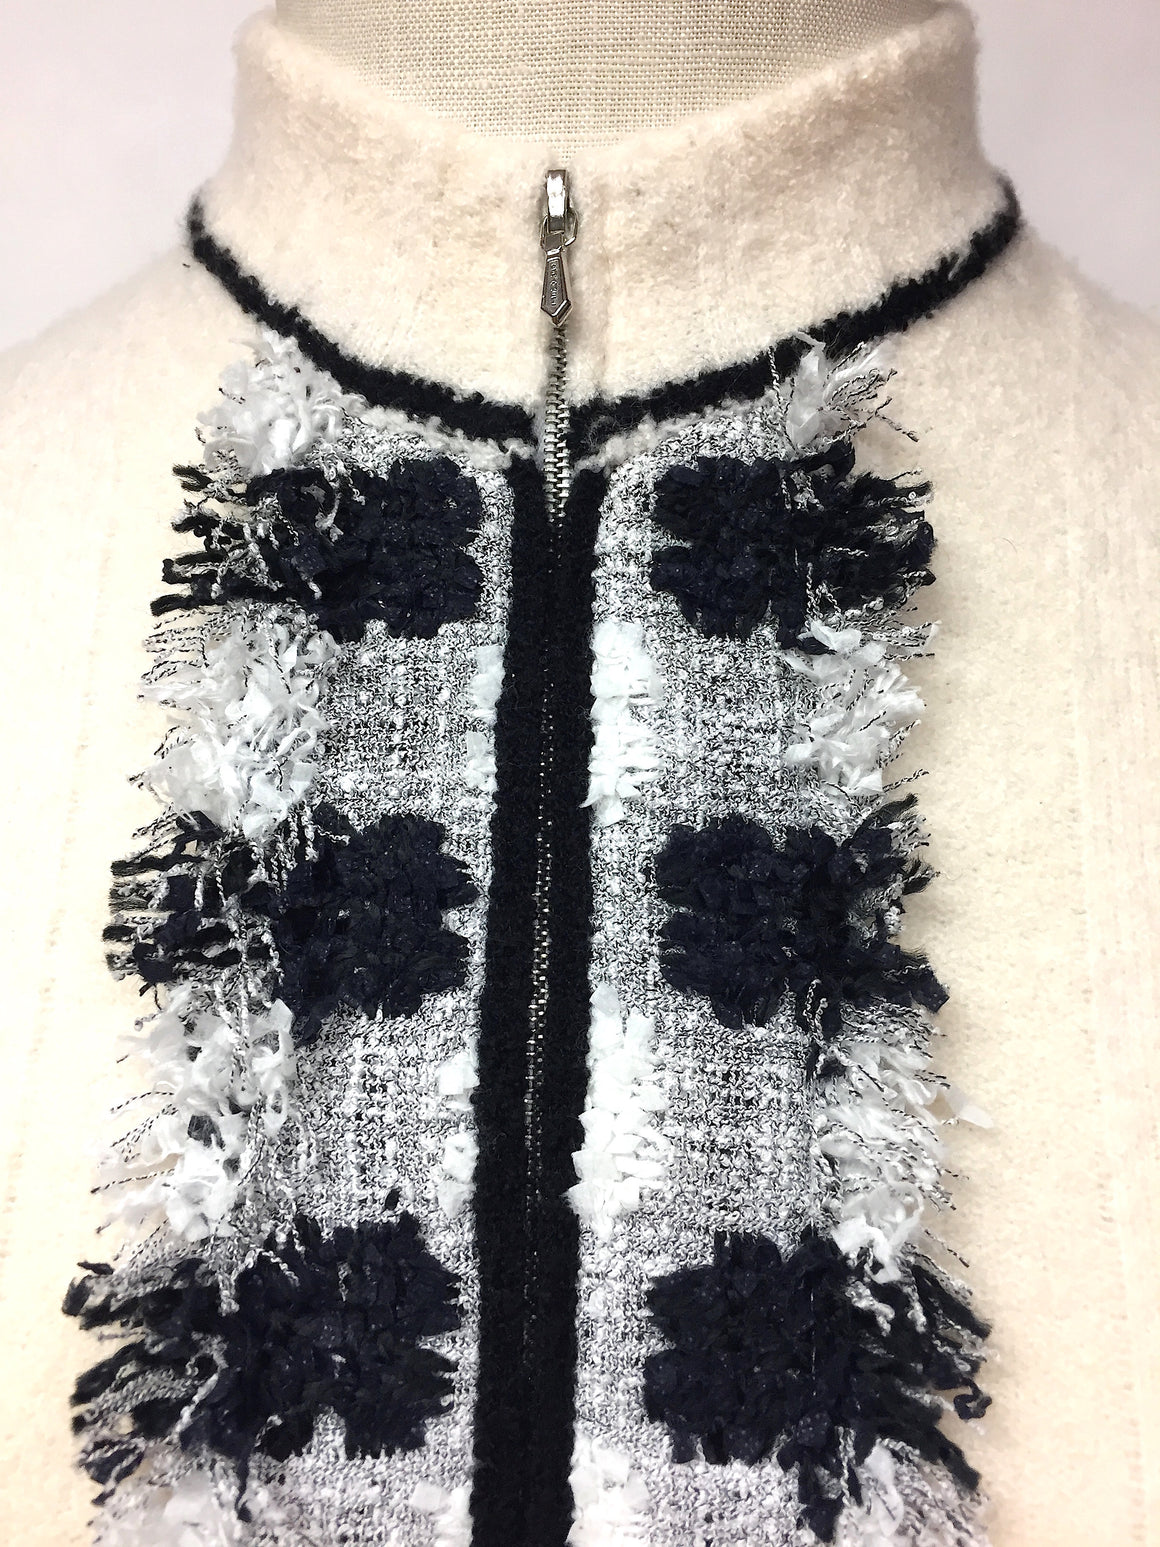 CHANEL Vintage Ivory Cashmere Blend Black/Gray Frayed Trim Zip-Front Cardigan Sweater Size: FR 38 / US6